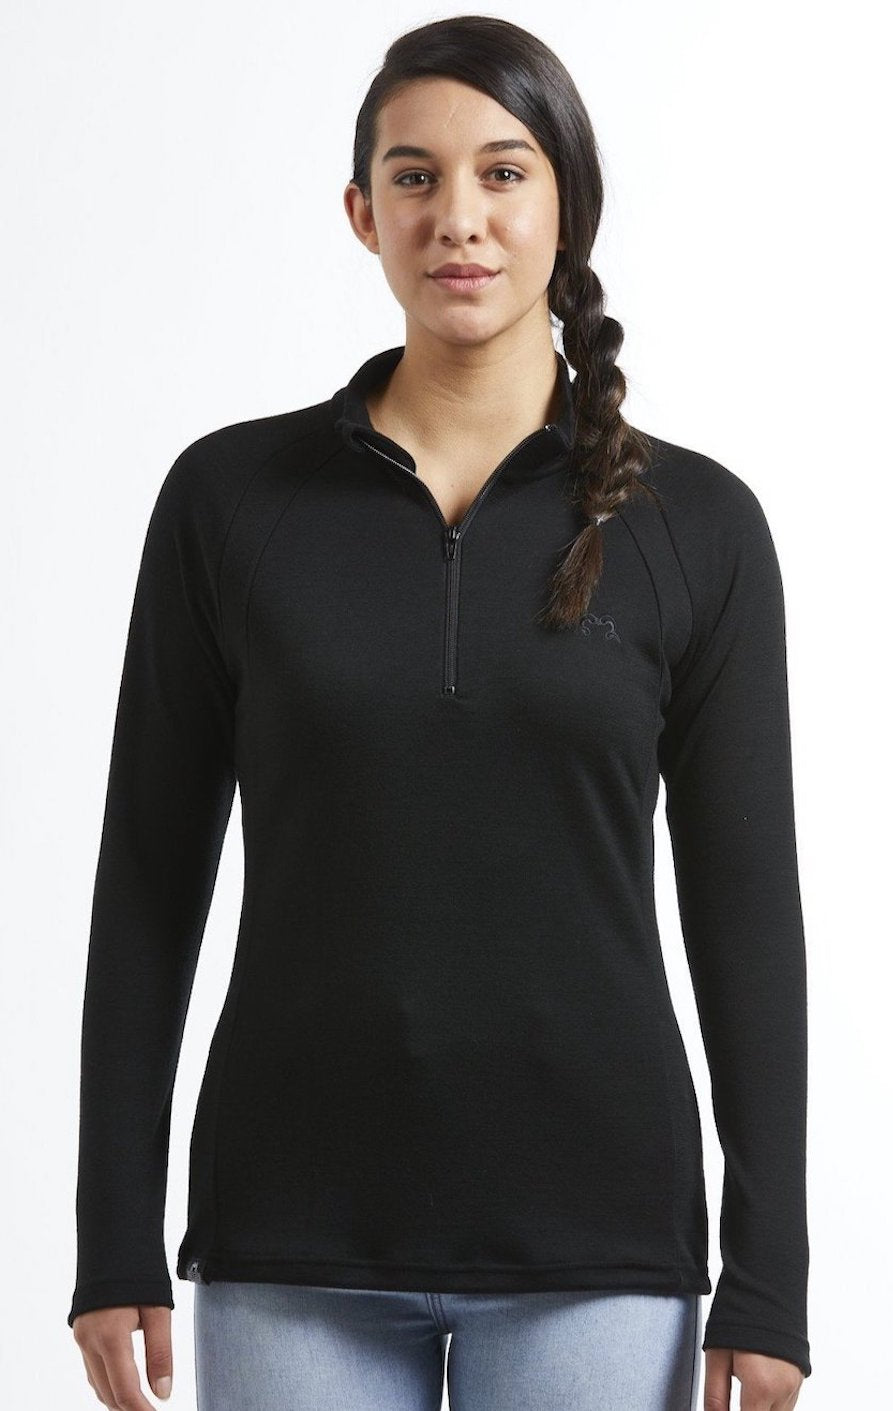 Hilltop Quarter Zip Jersey | Black | True Fleece New Zealand